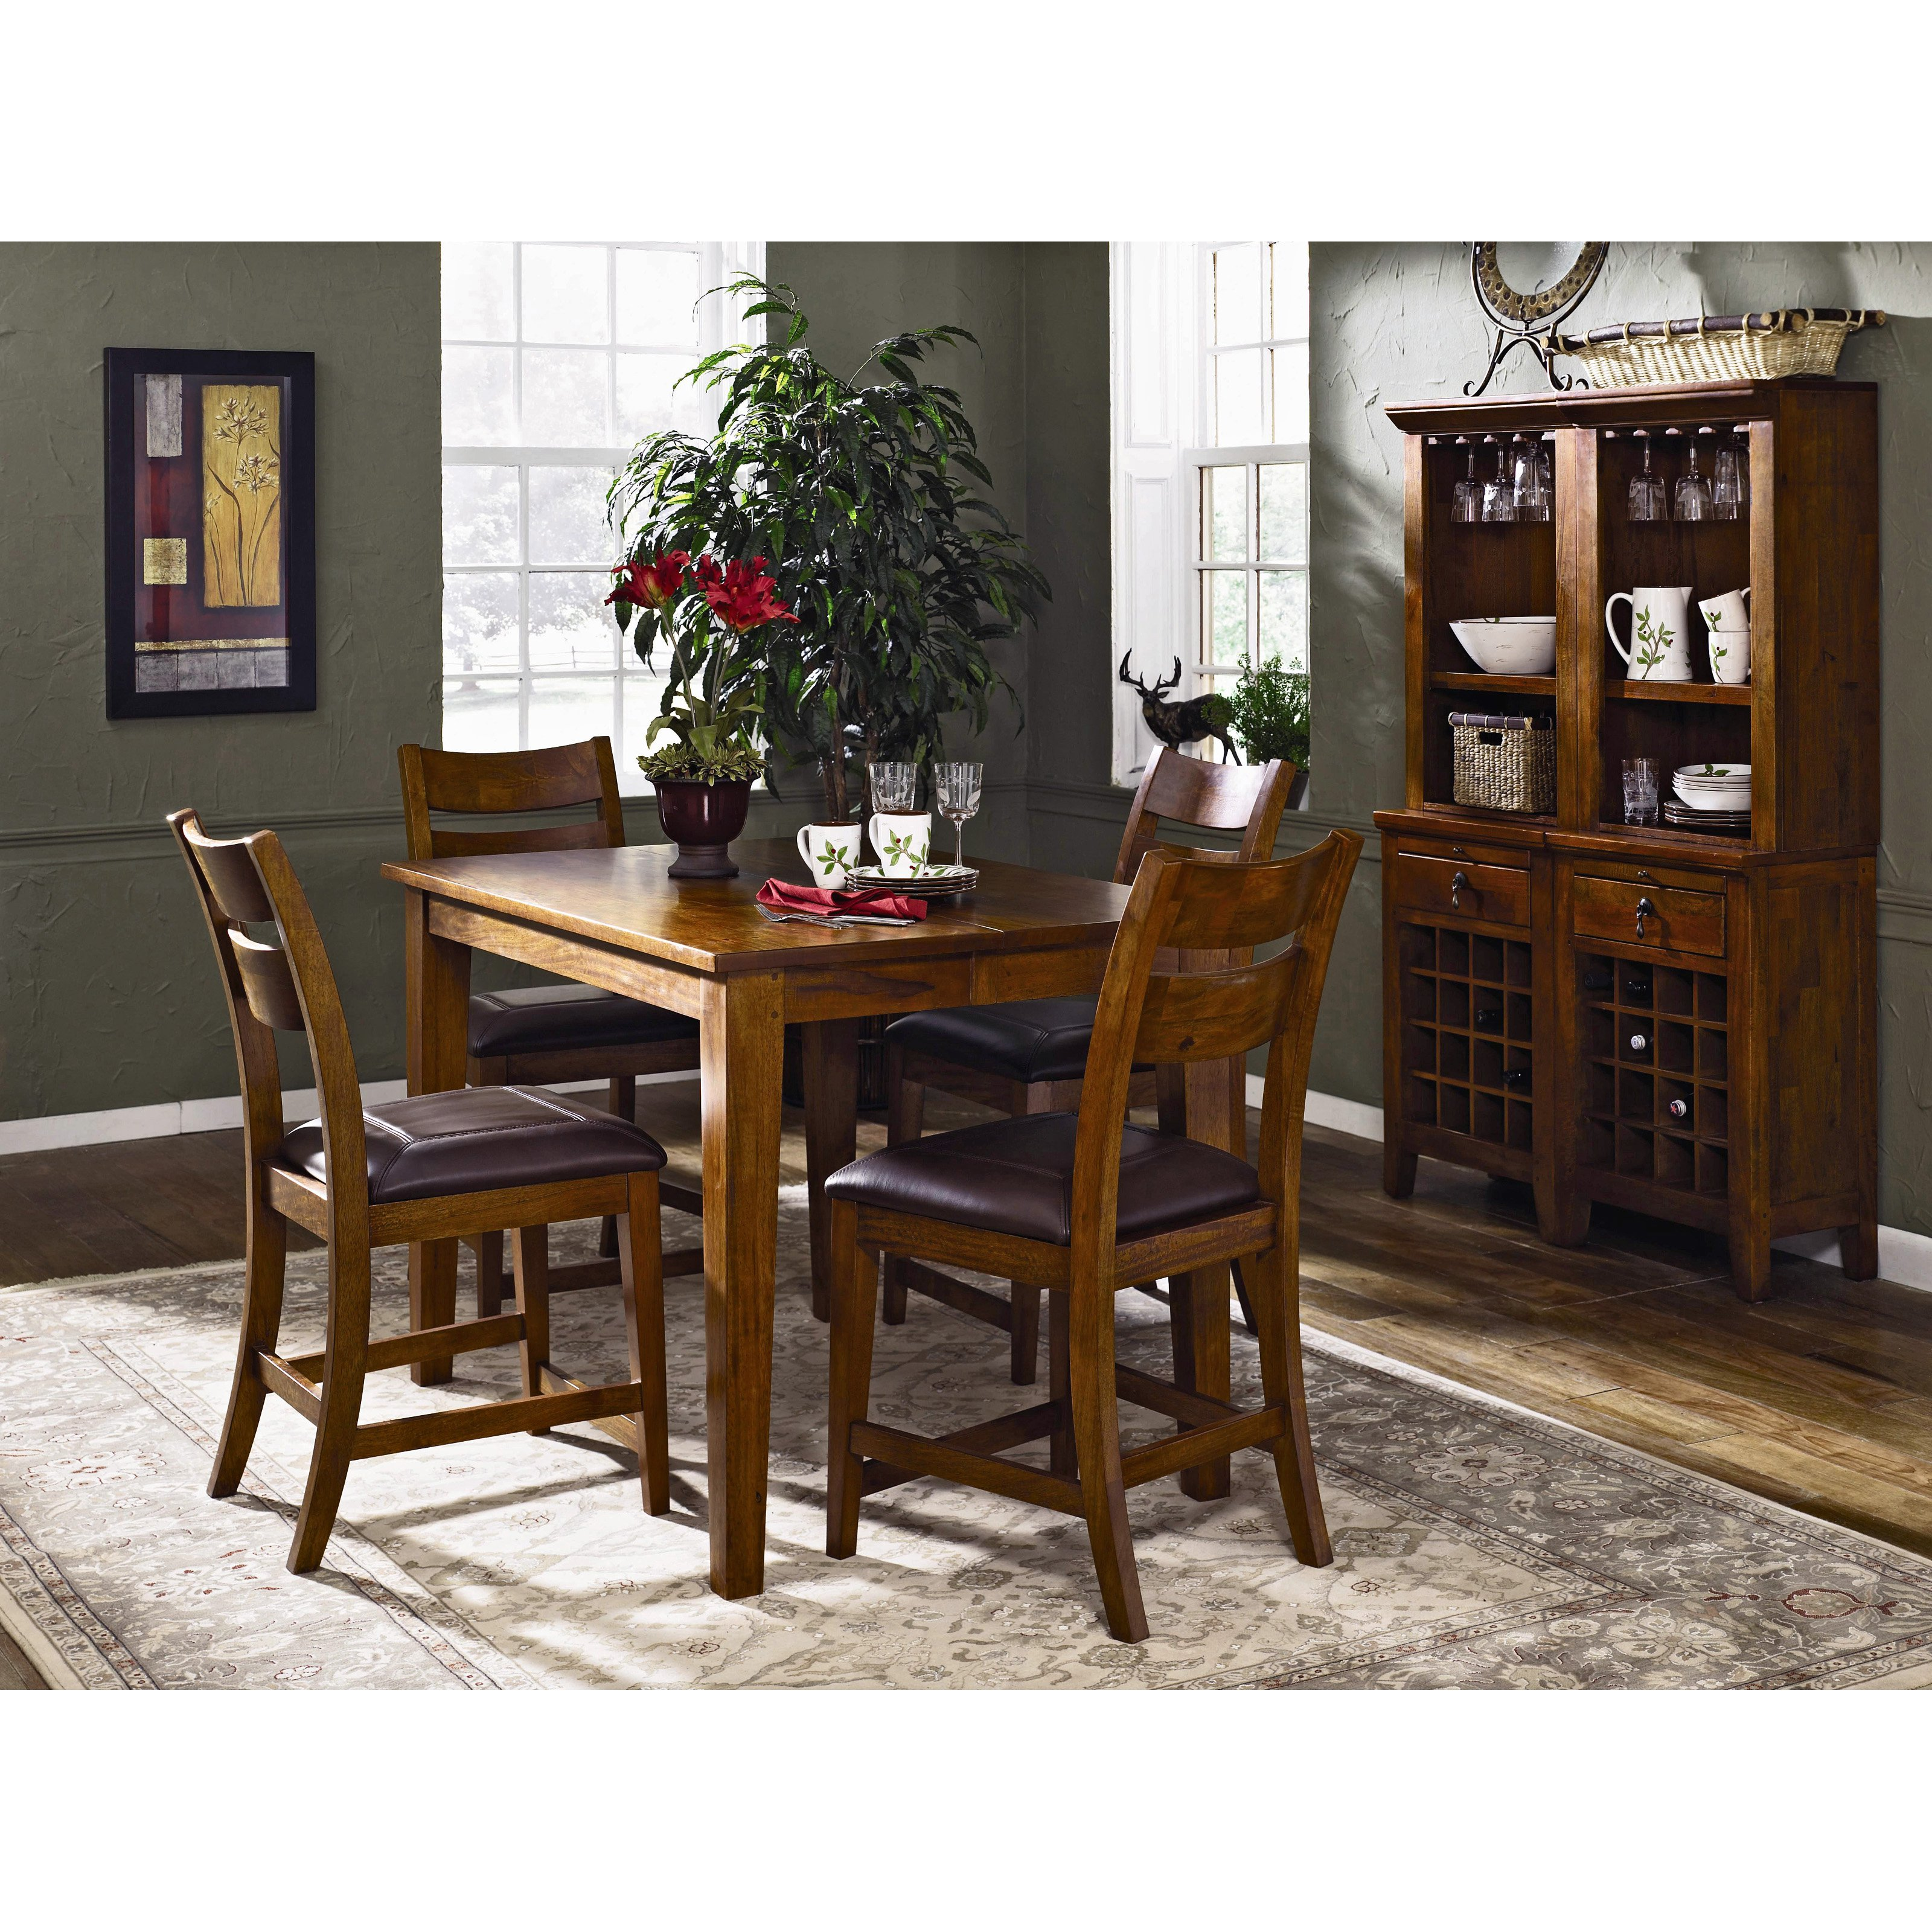 Klaussner Urban Craftsman Counter Height Dining Table